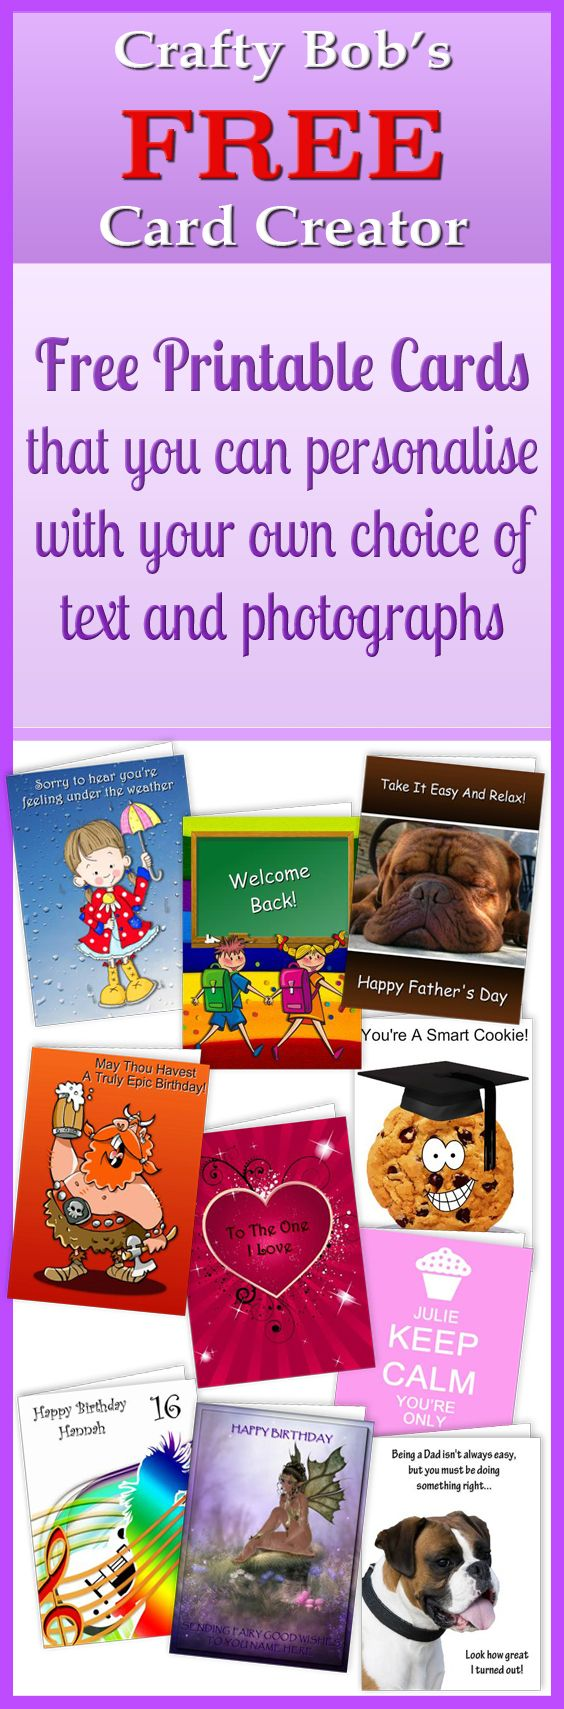 Create your own personalised greeting cards for birthdays, weddings, children, graduation, father's day, mother's day, valentine's day and more. Add your own choice of text, photographs, etc and download and print at home. Best of all it's completely FREE!